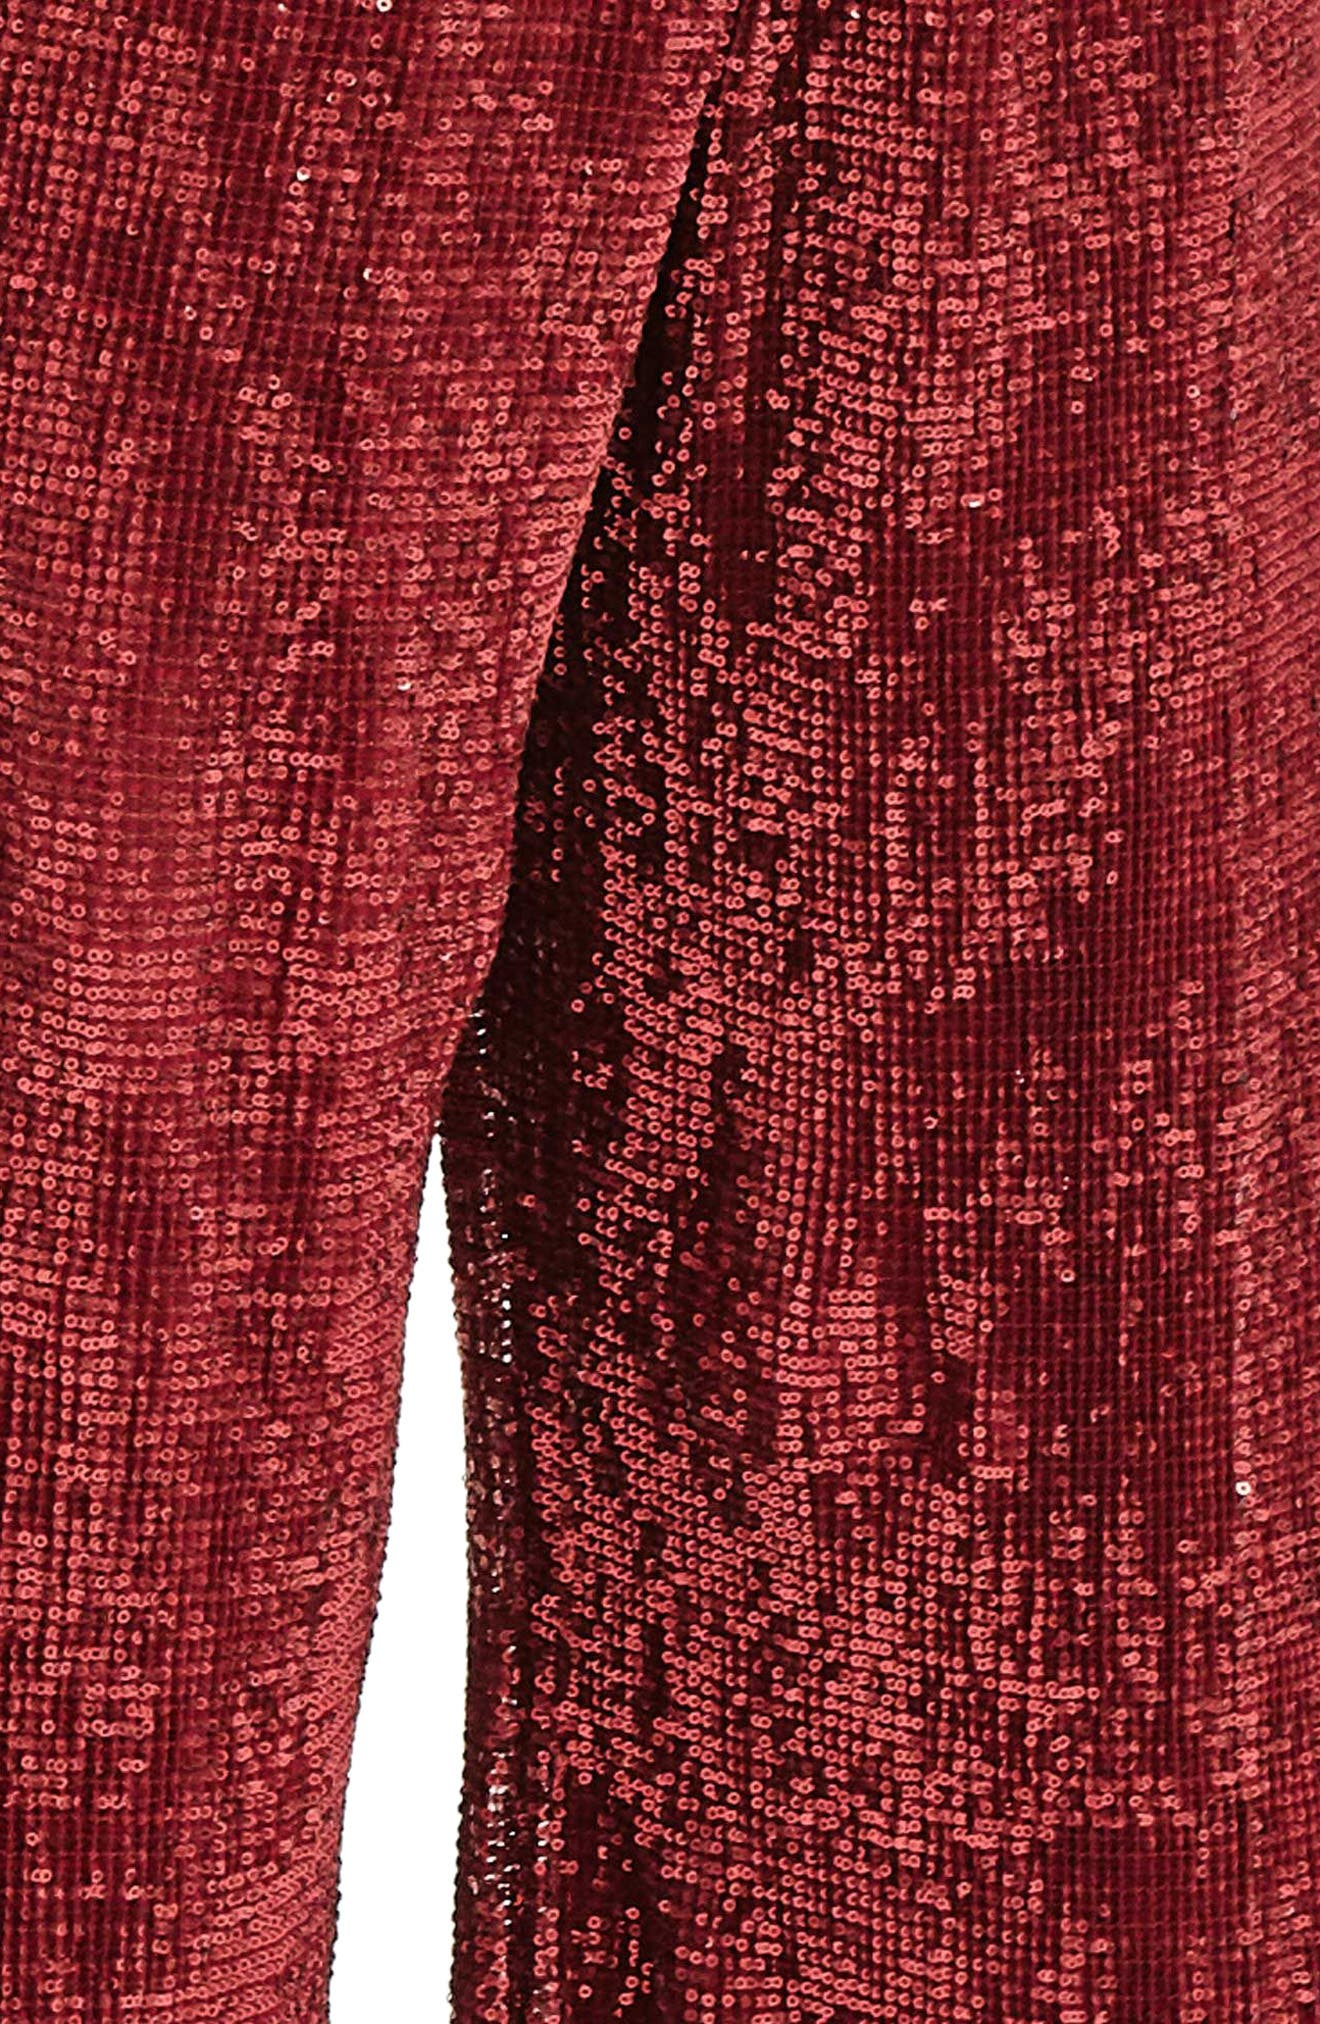 Red Sequin Trousers,                             Alternate thumbnail 4, color,                             600